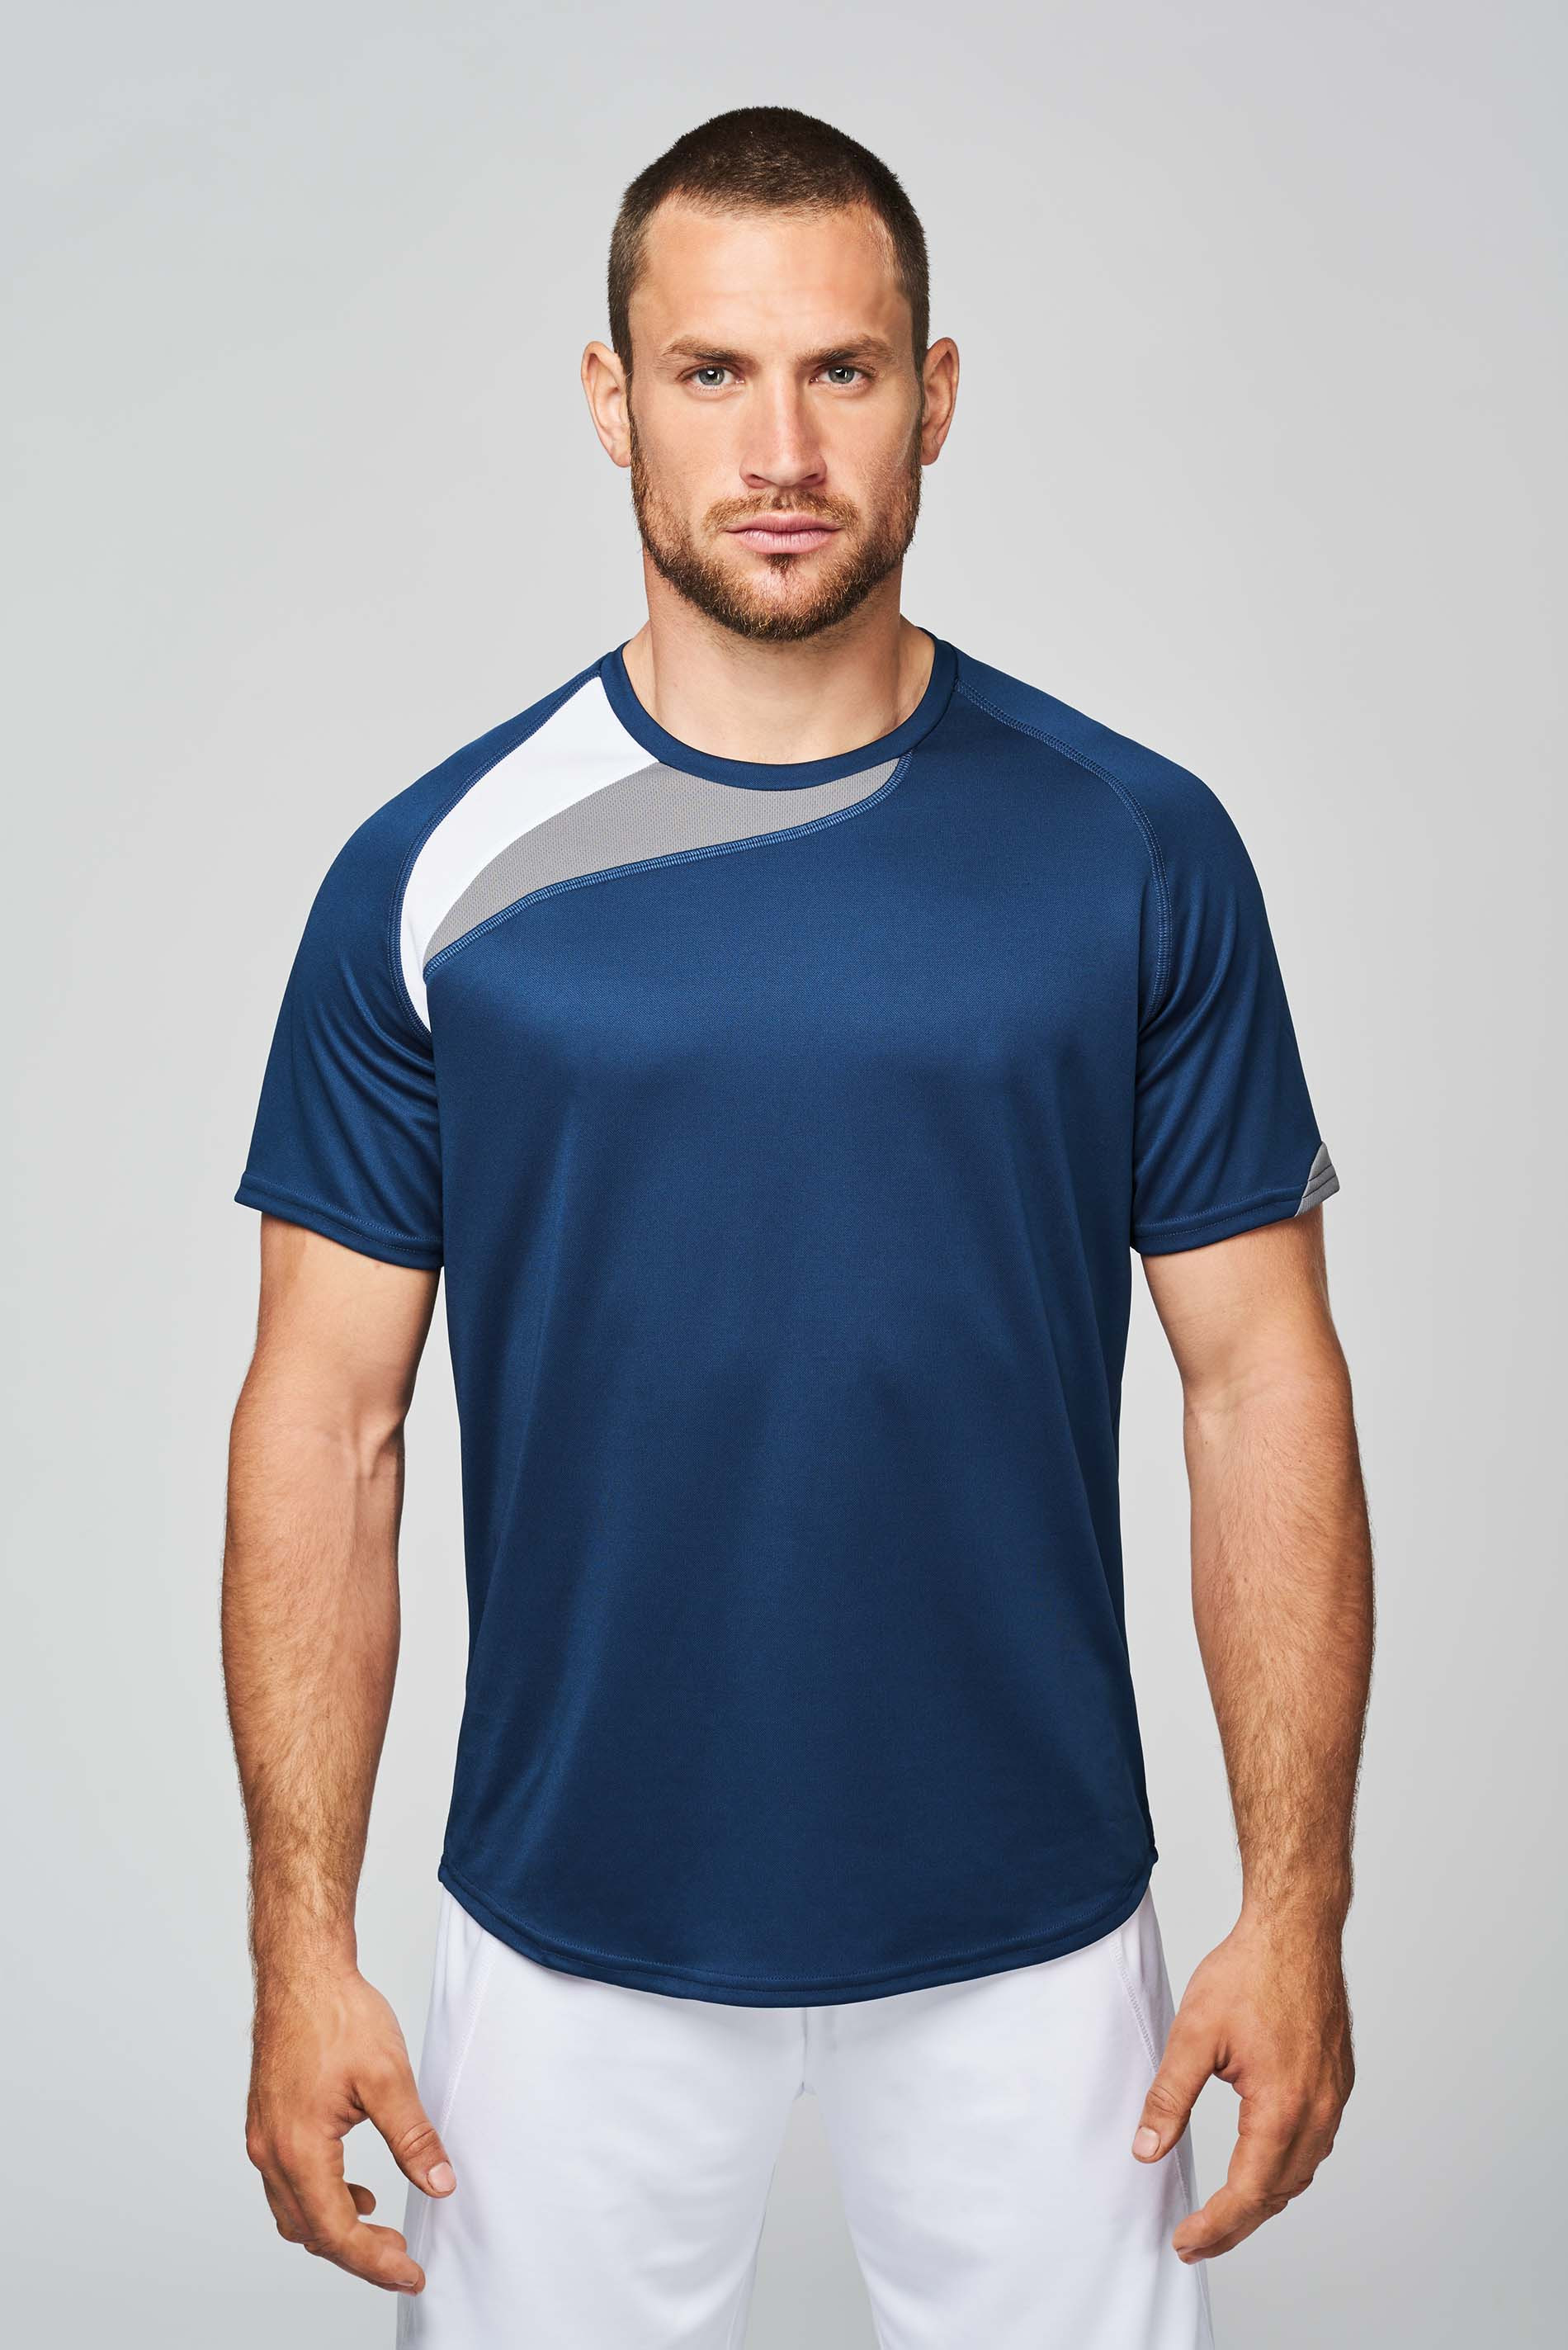 Proact T-SHIRT SPORT MANCHES COURTES UNISEXE